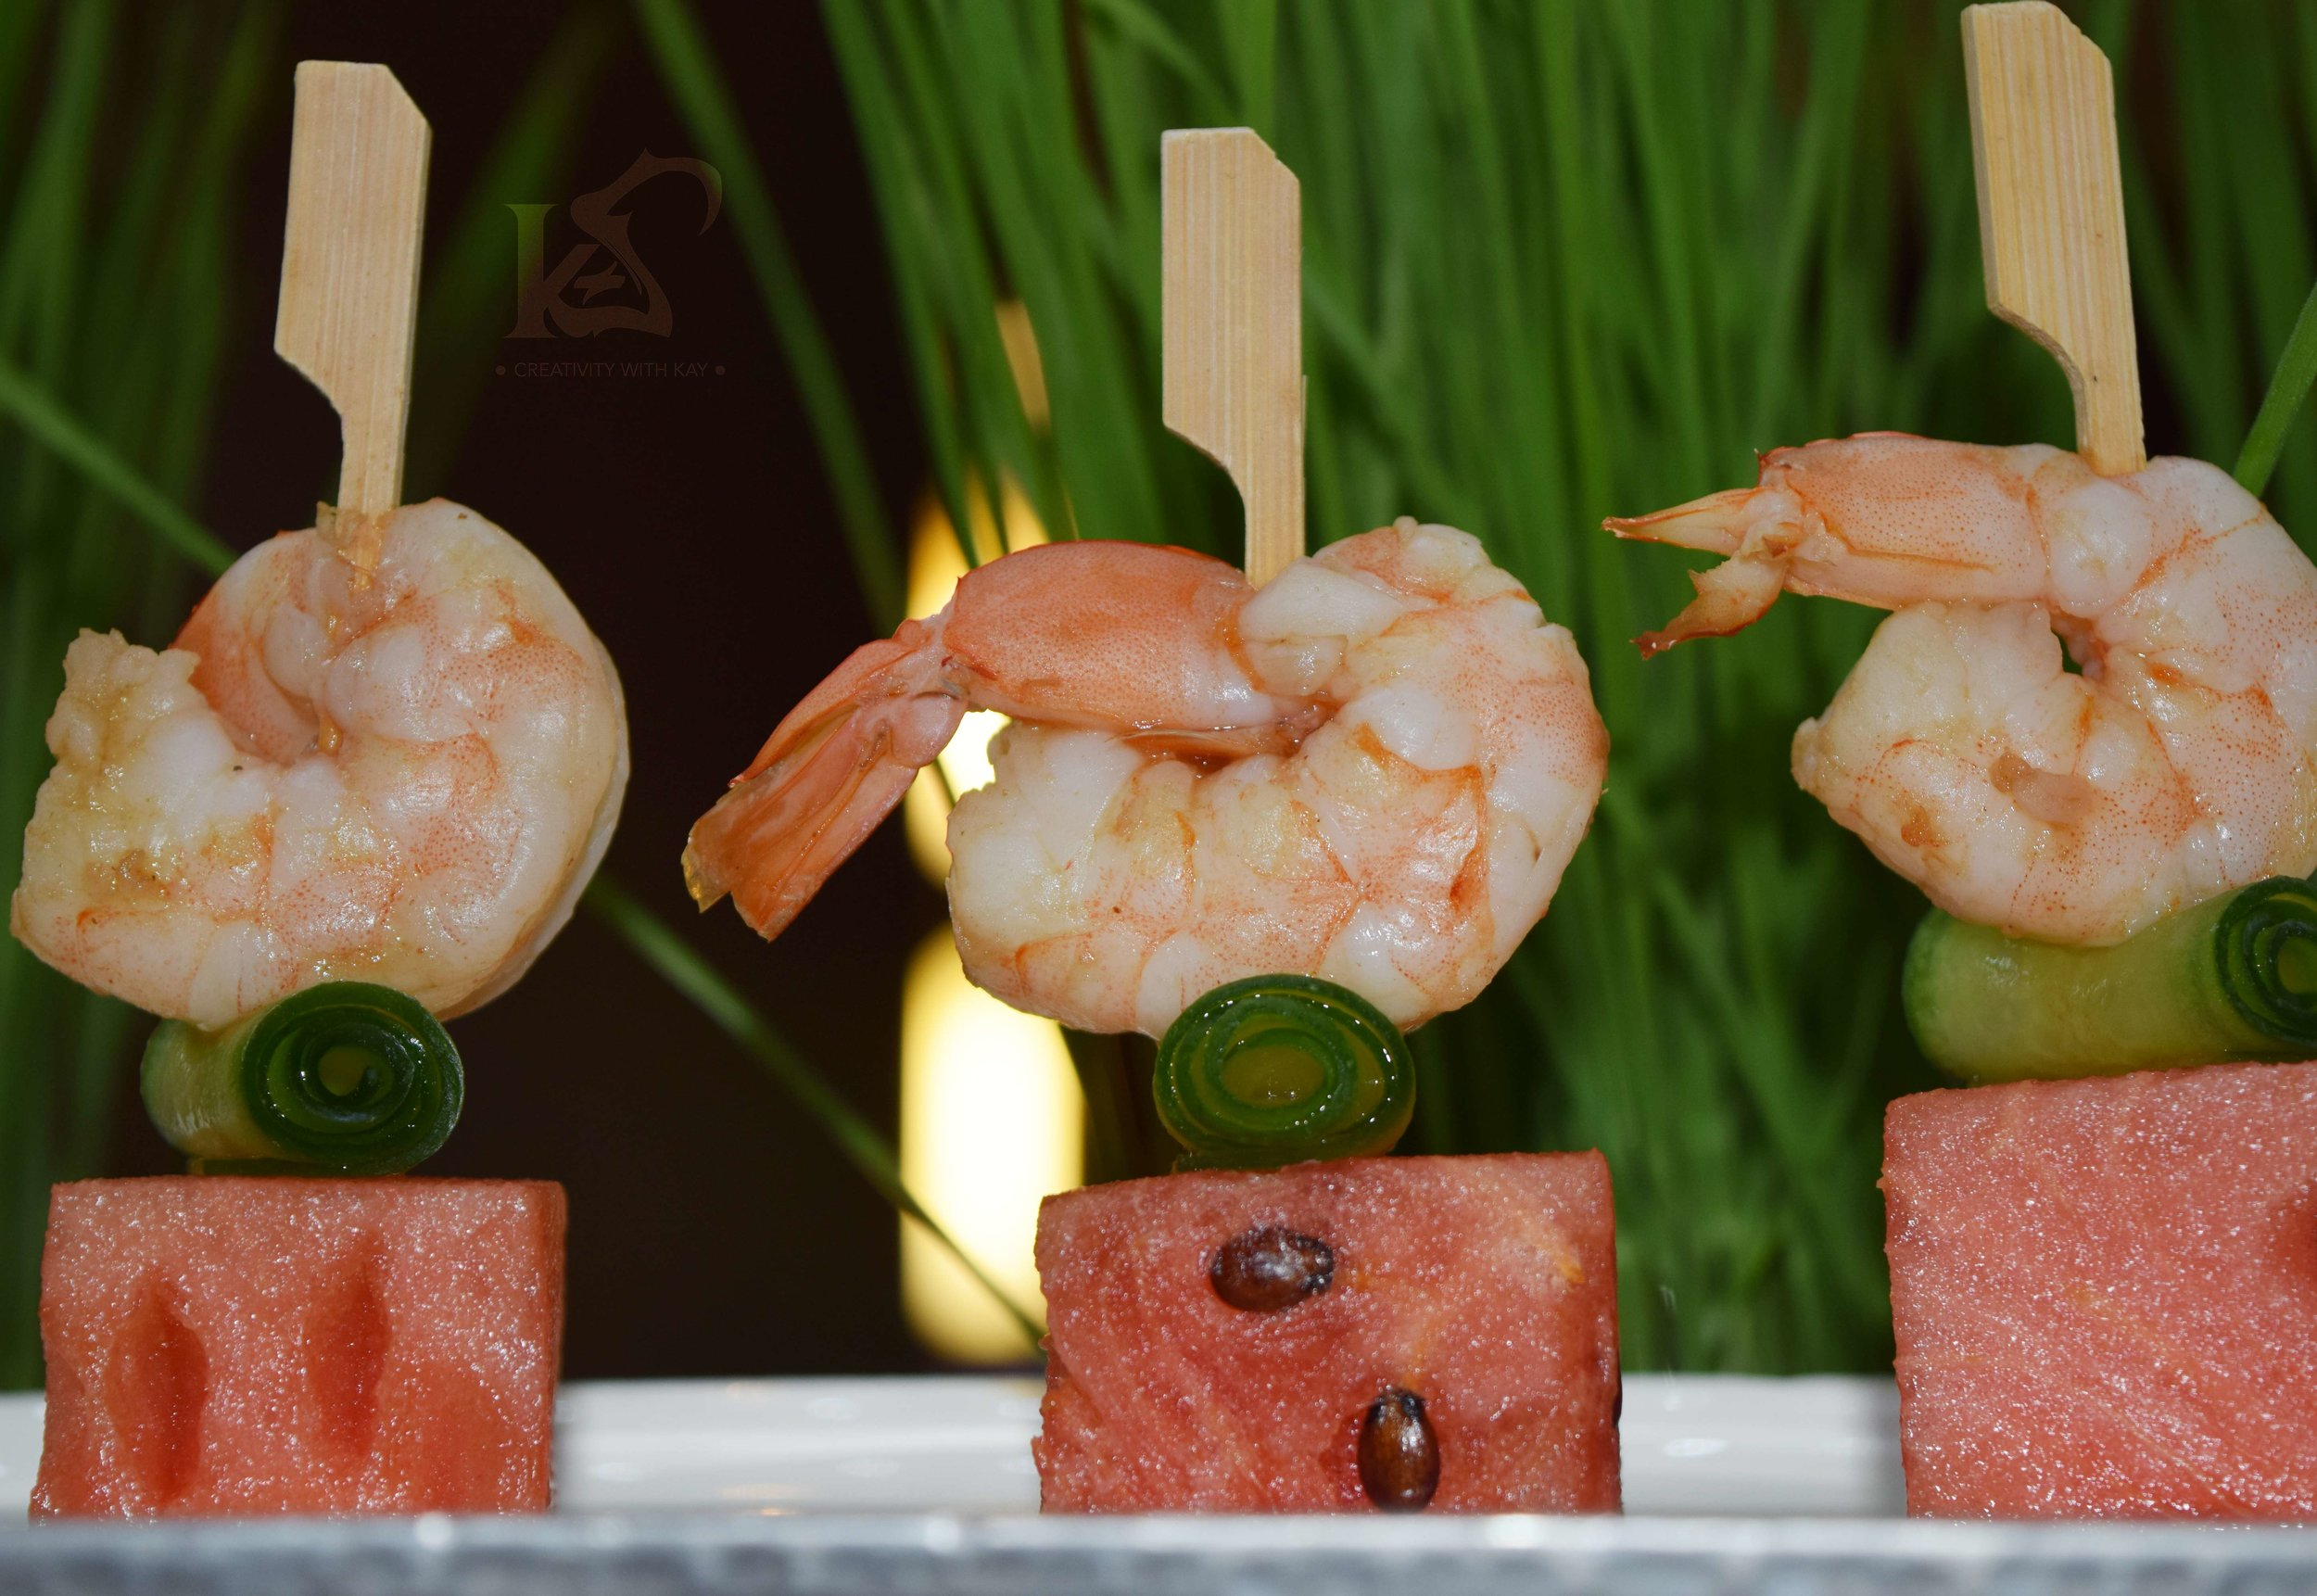 How tempting do these shrimps look?